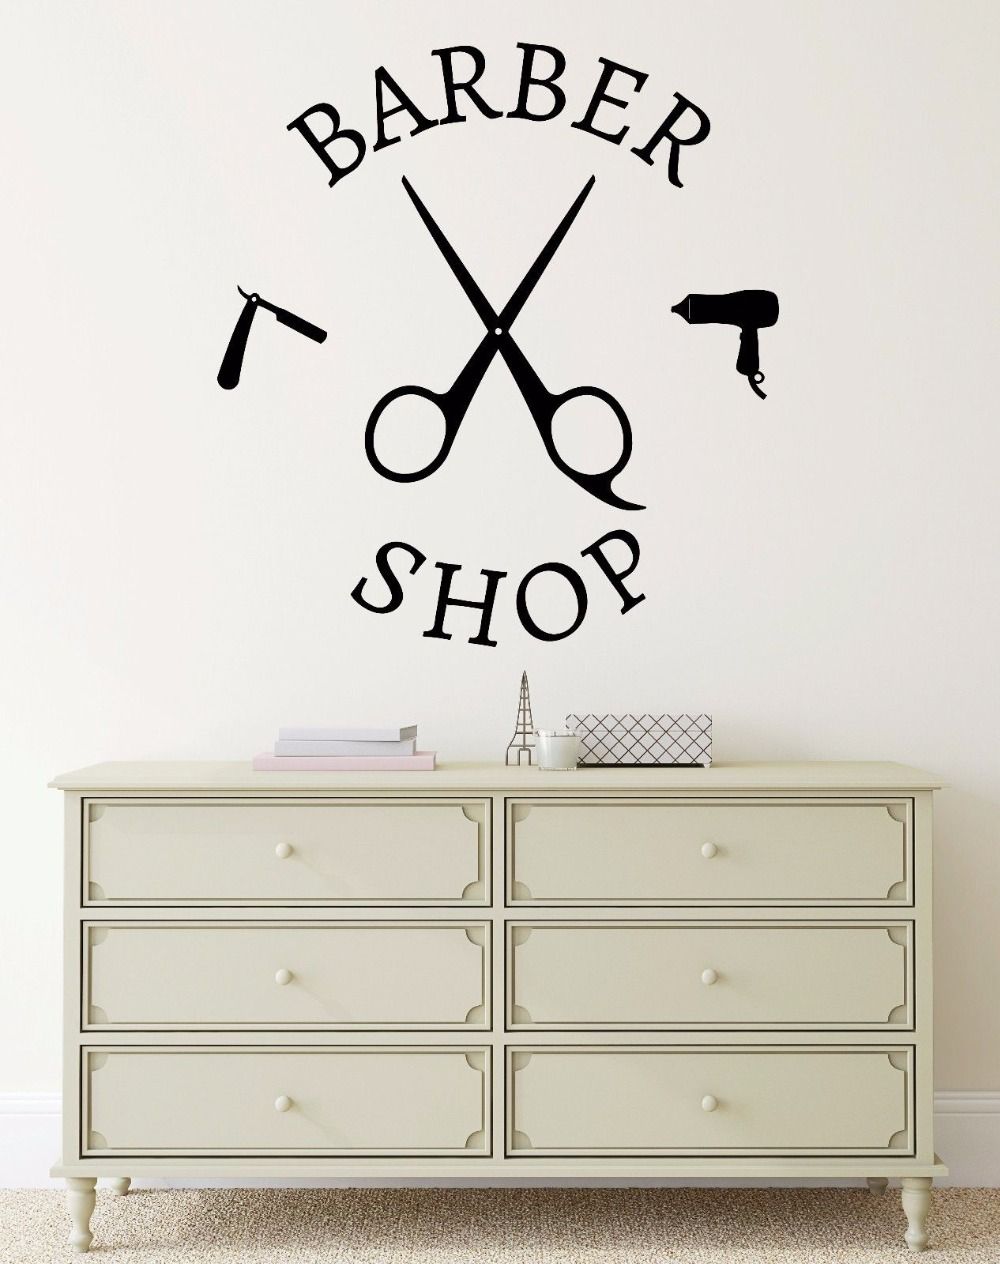 Hair Salon Vinyl Wall Decal Barber Shop Salon Hair Stylist Tools - Custom vinyl wall decals for hair salonvinyl wall decal hair salon stylist hairdresser barber shop